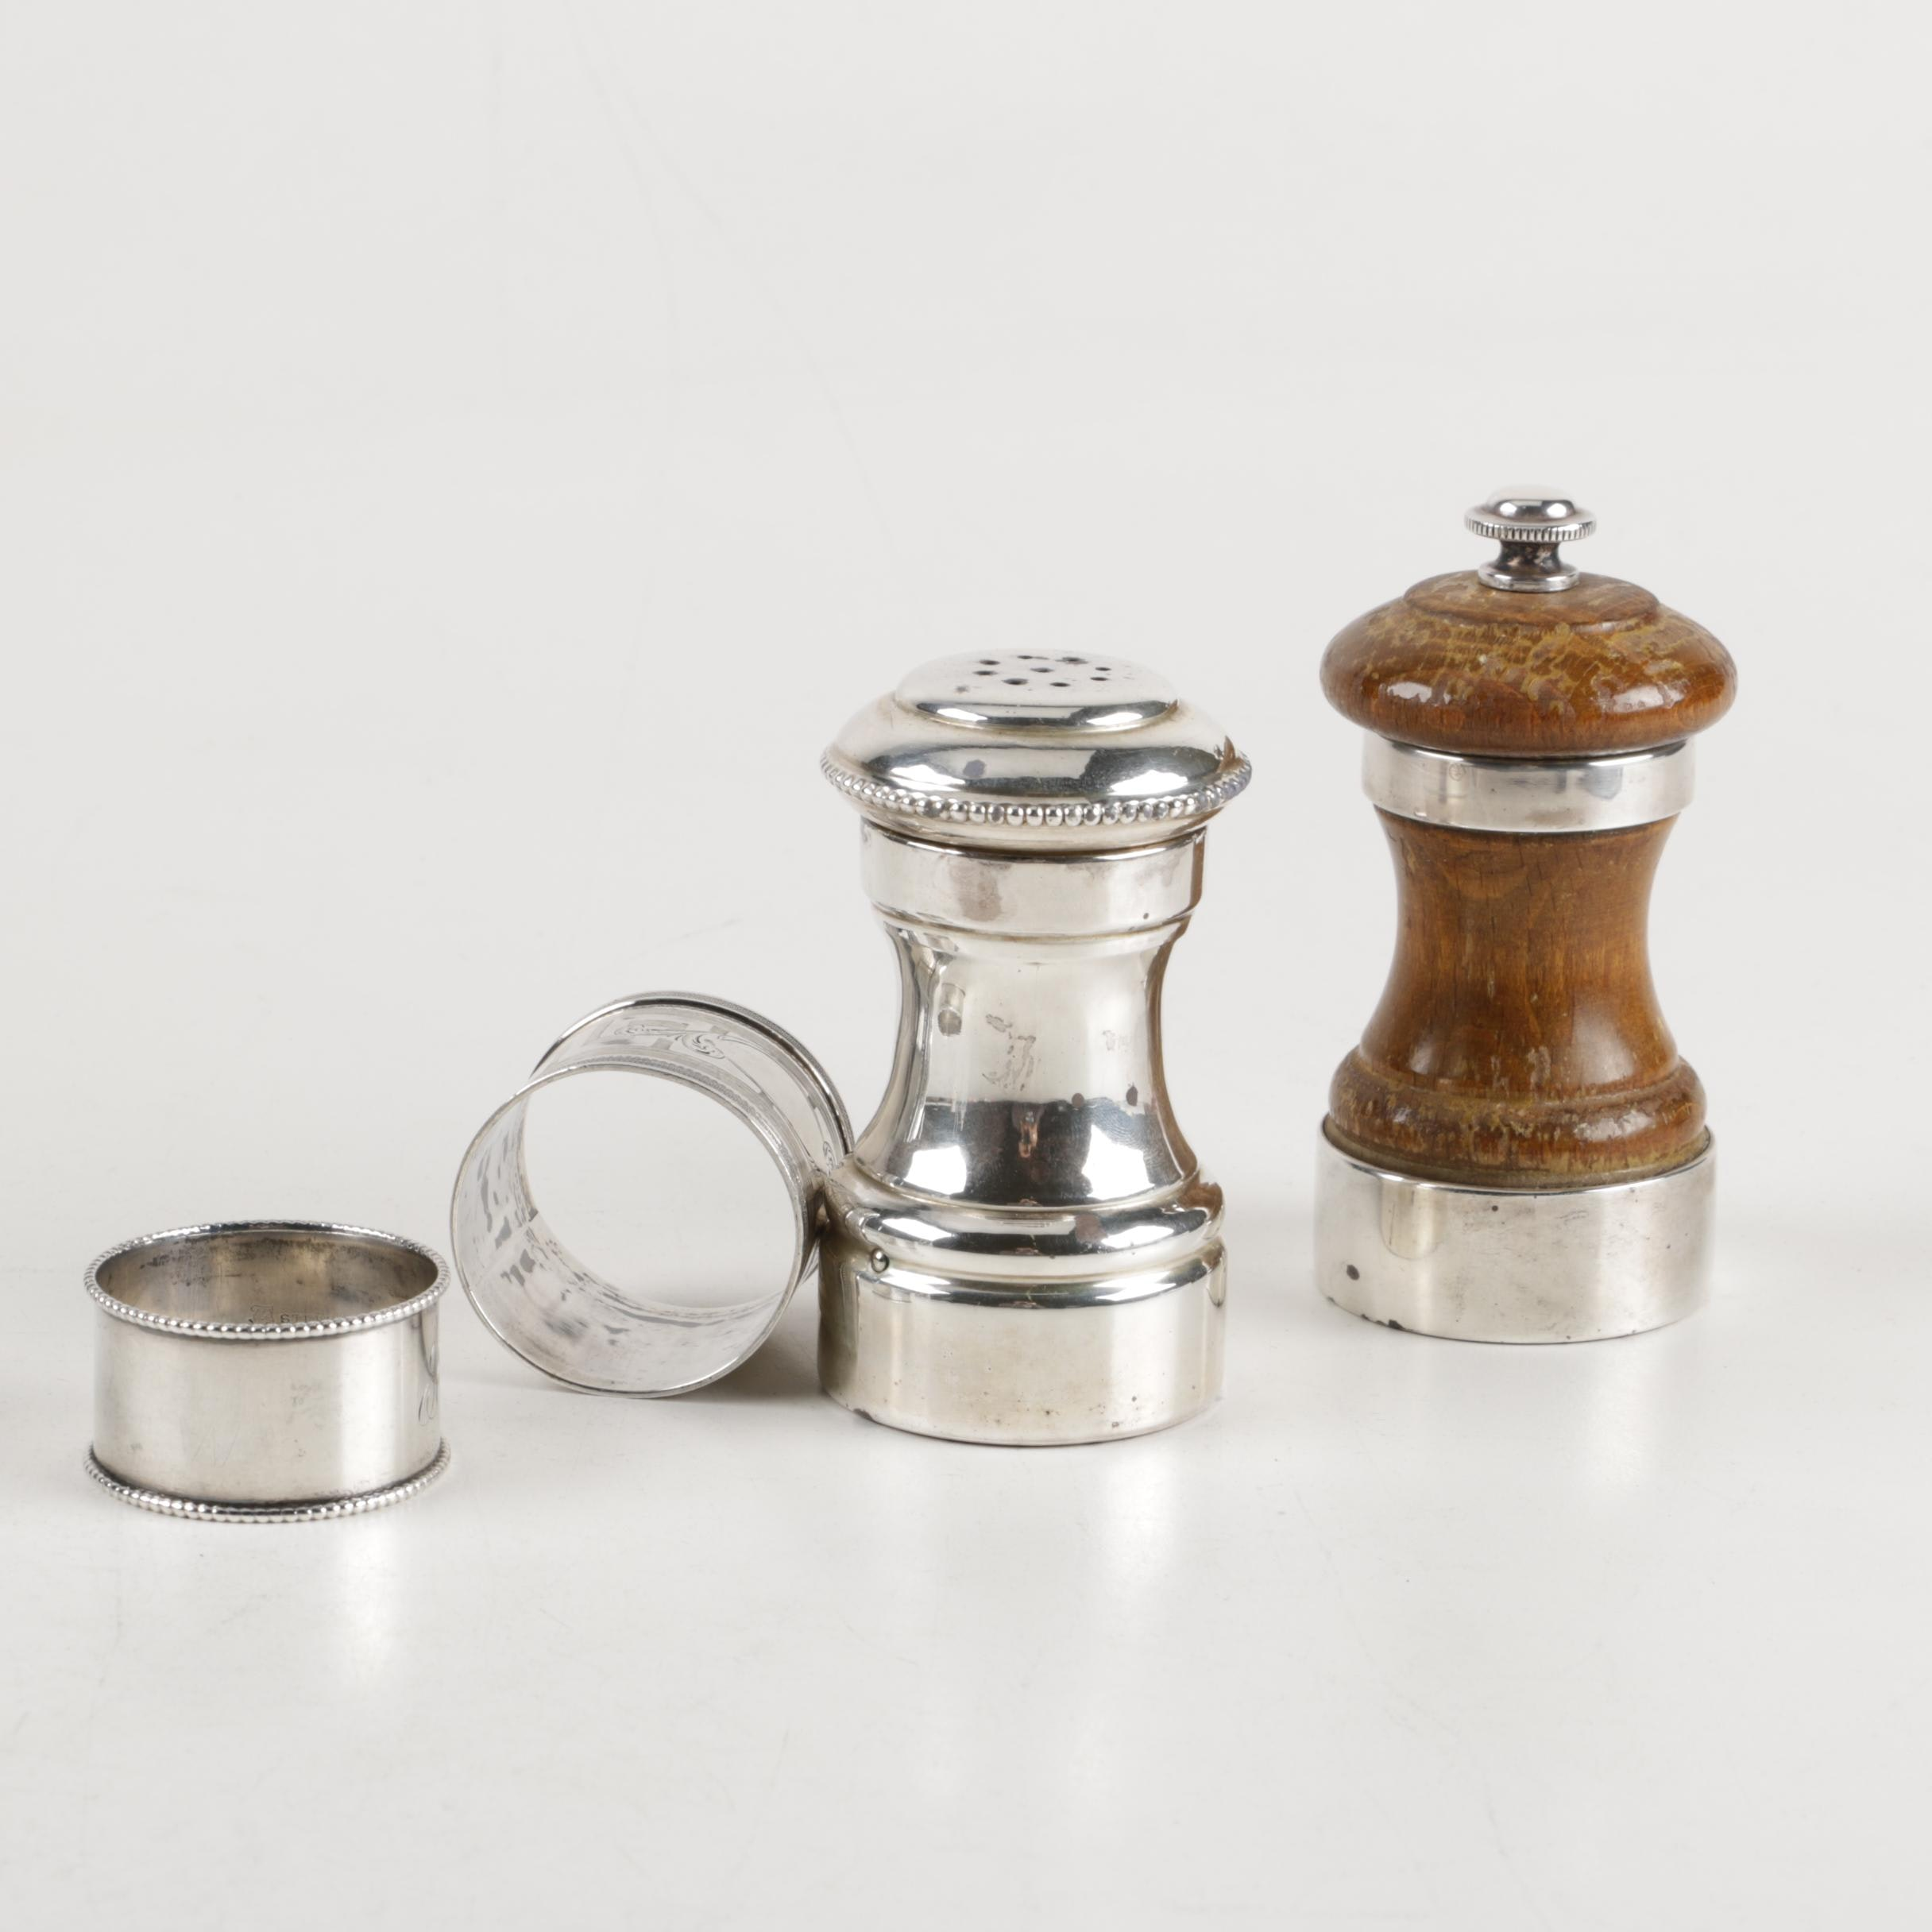 Collection of Sterling Silver and Silver Tone Tableware